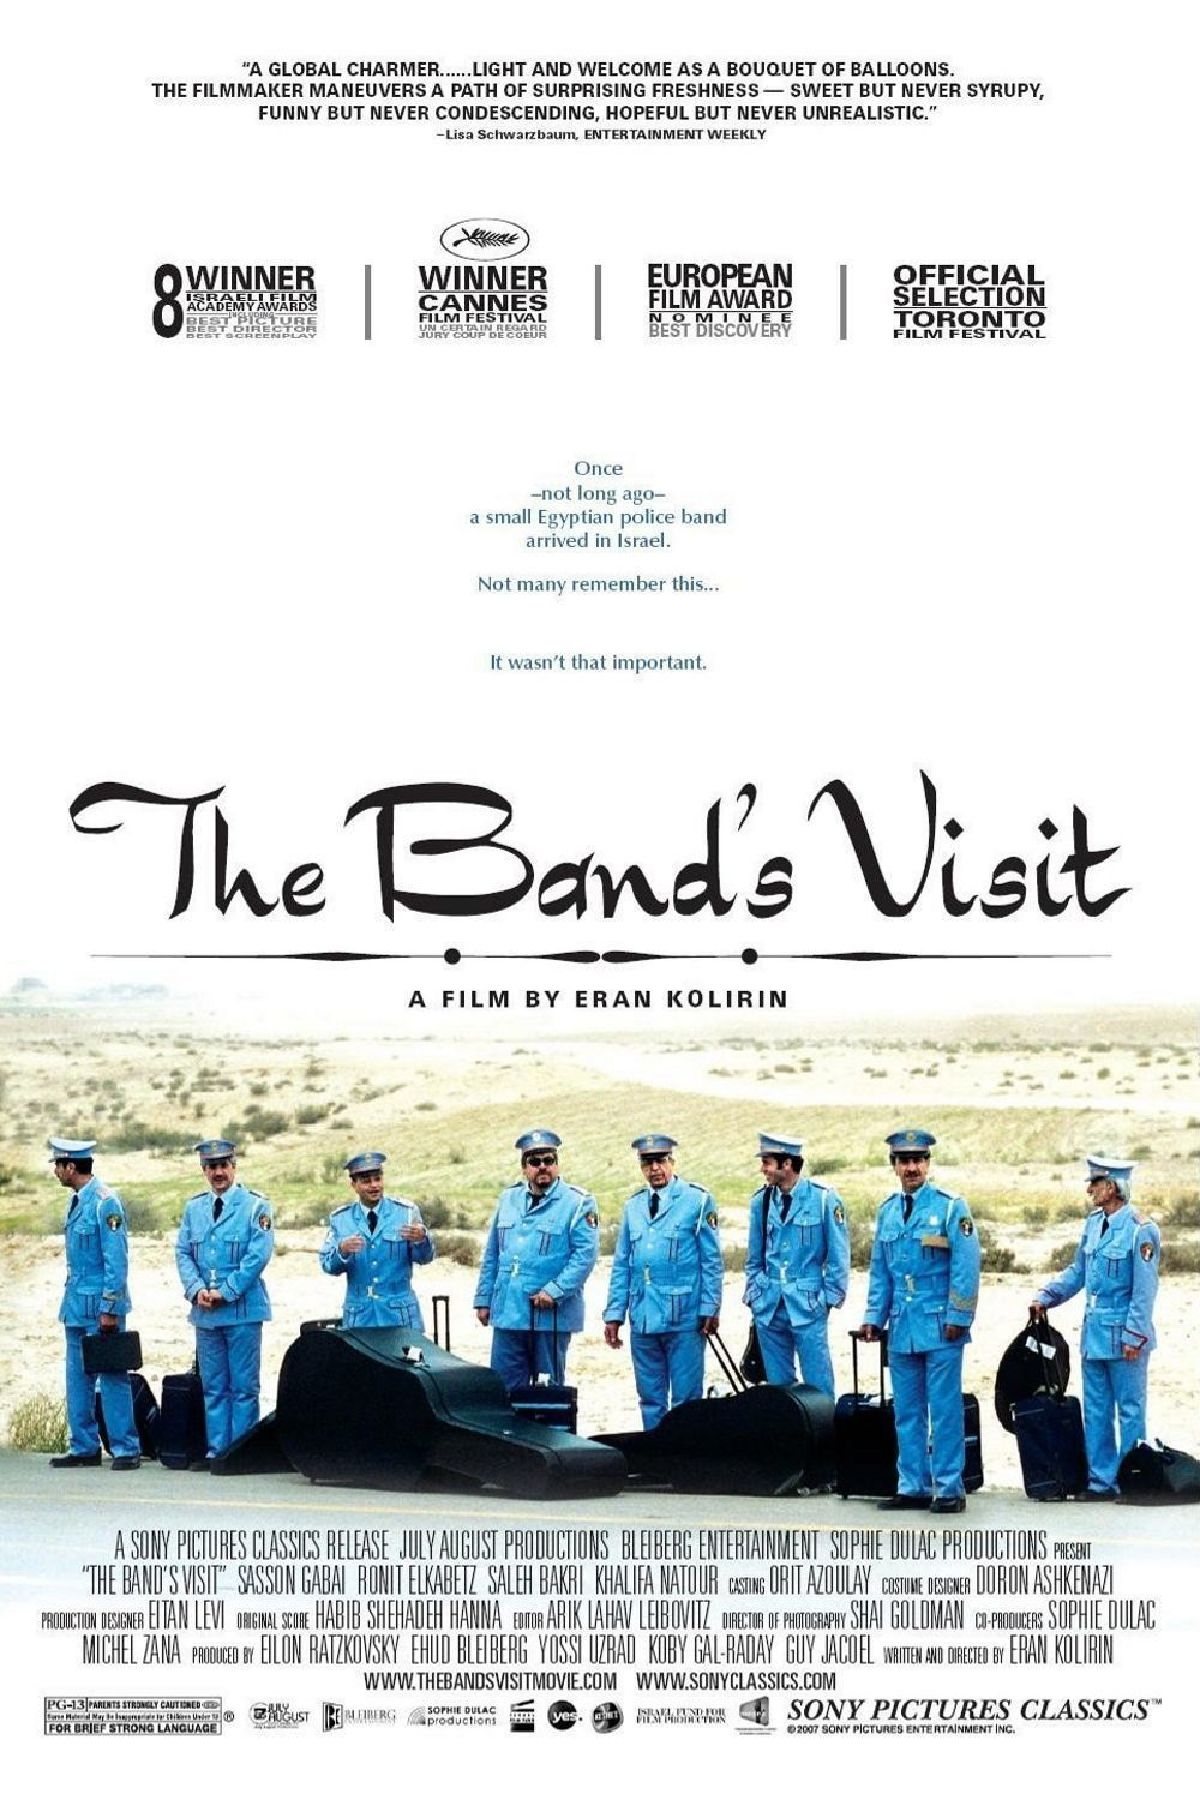 'The Band's Visit' movie poster